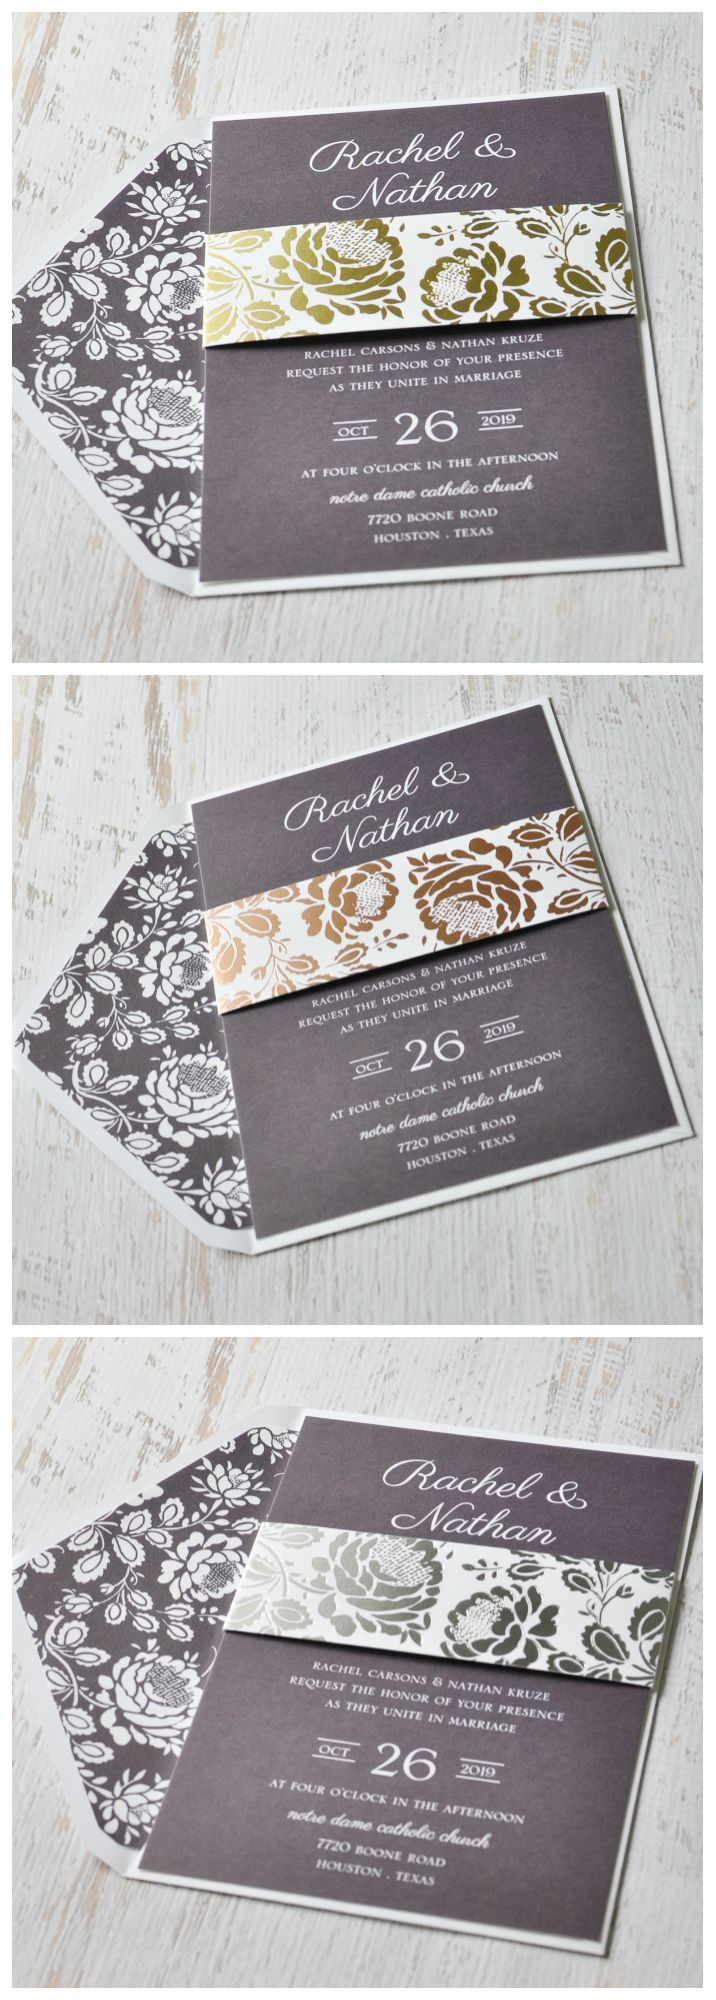 wedding invitation email free%0A A touch of shine and a lot of style will captivate your wedding guests  This